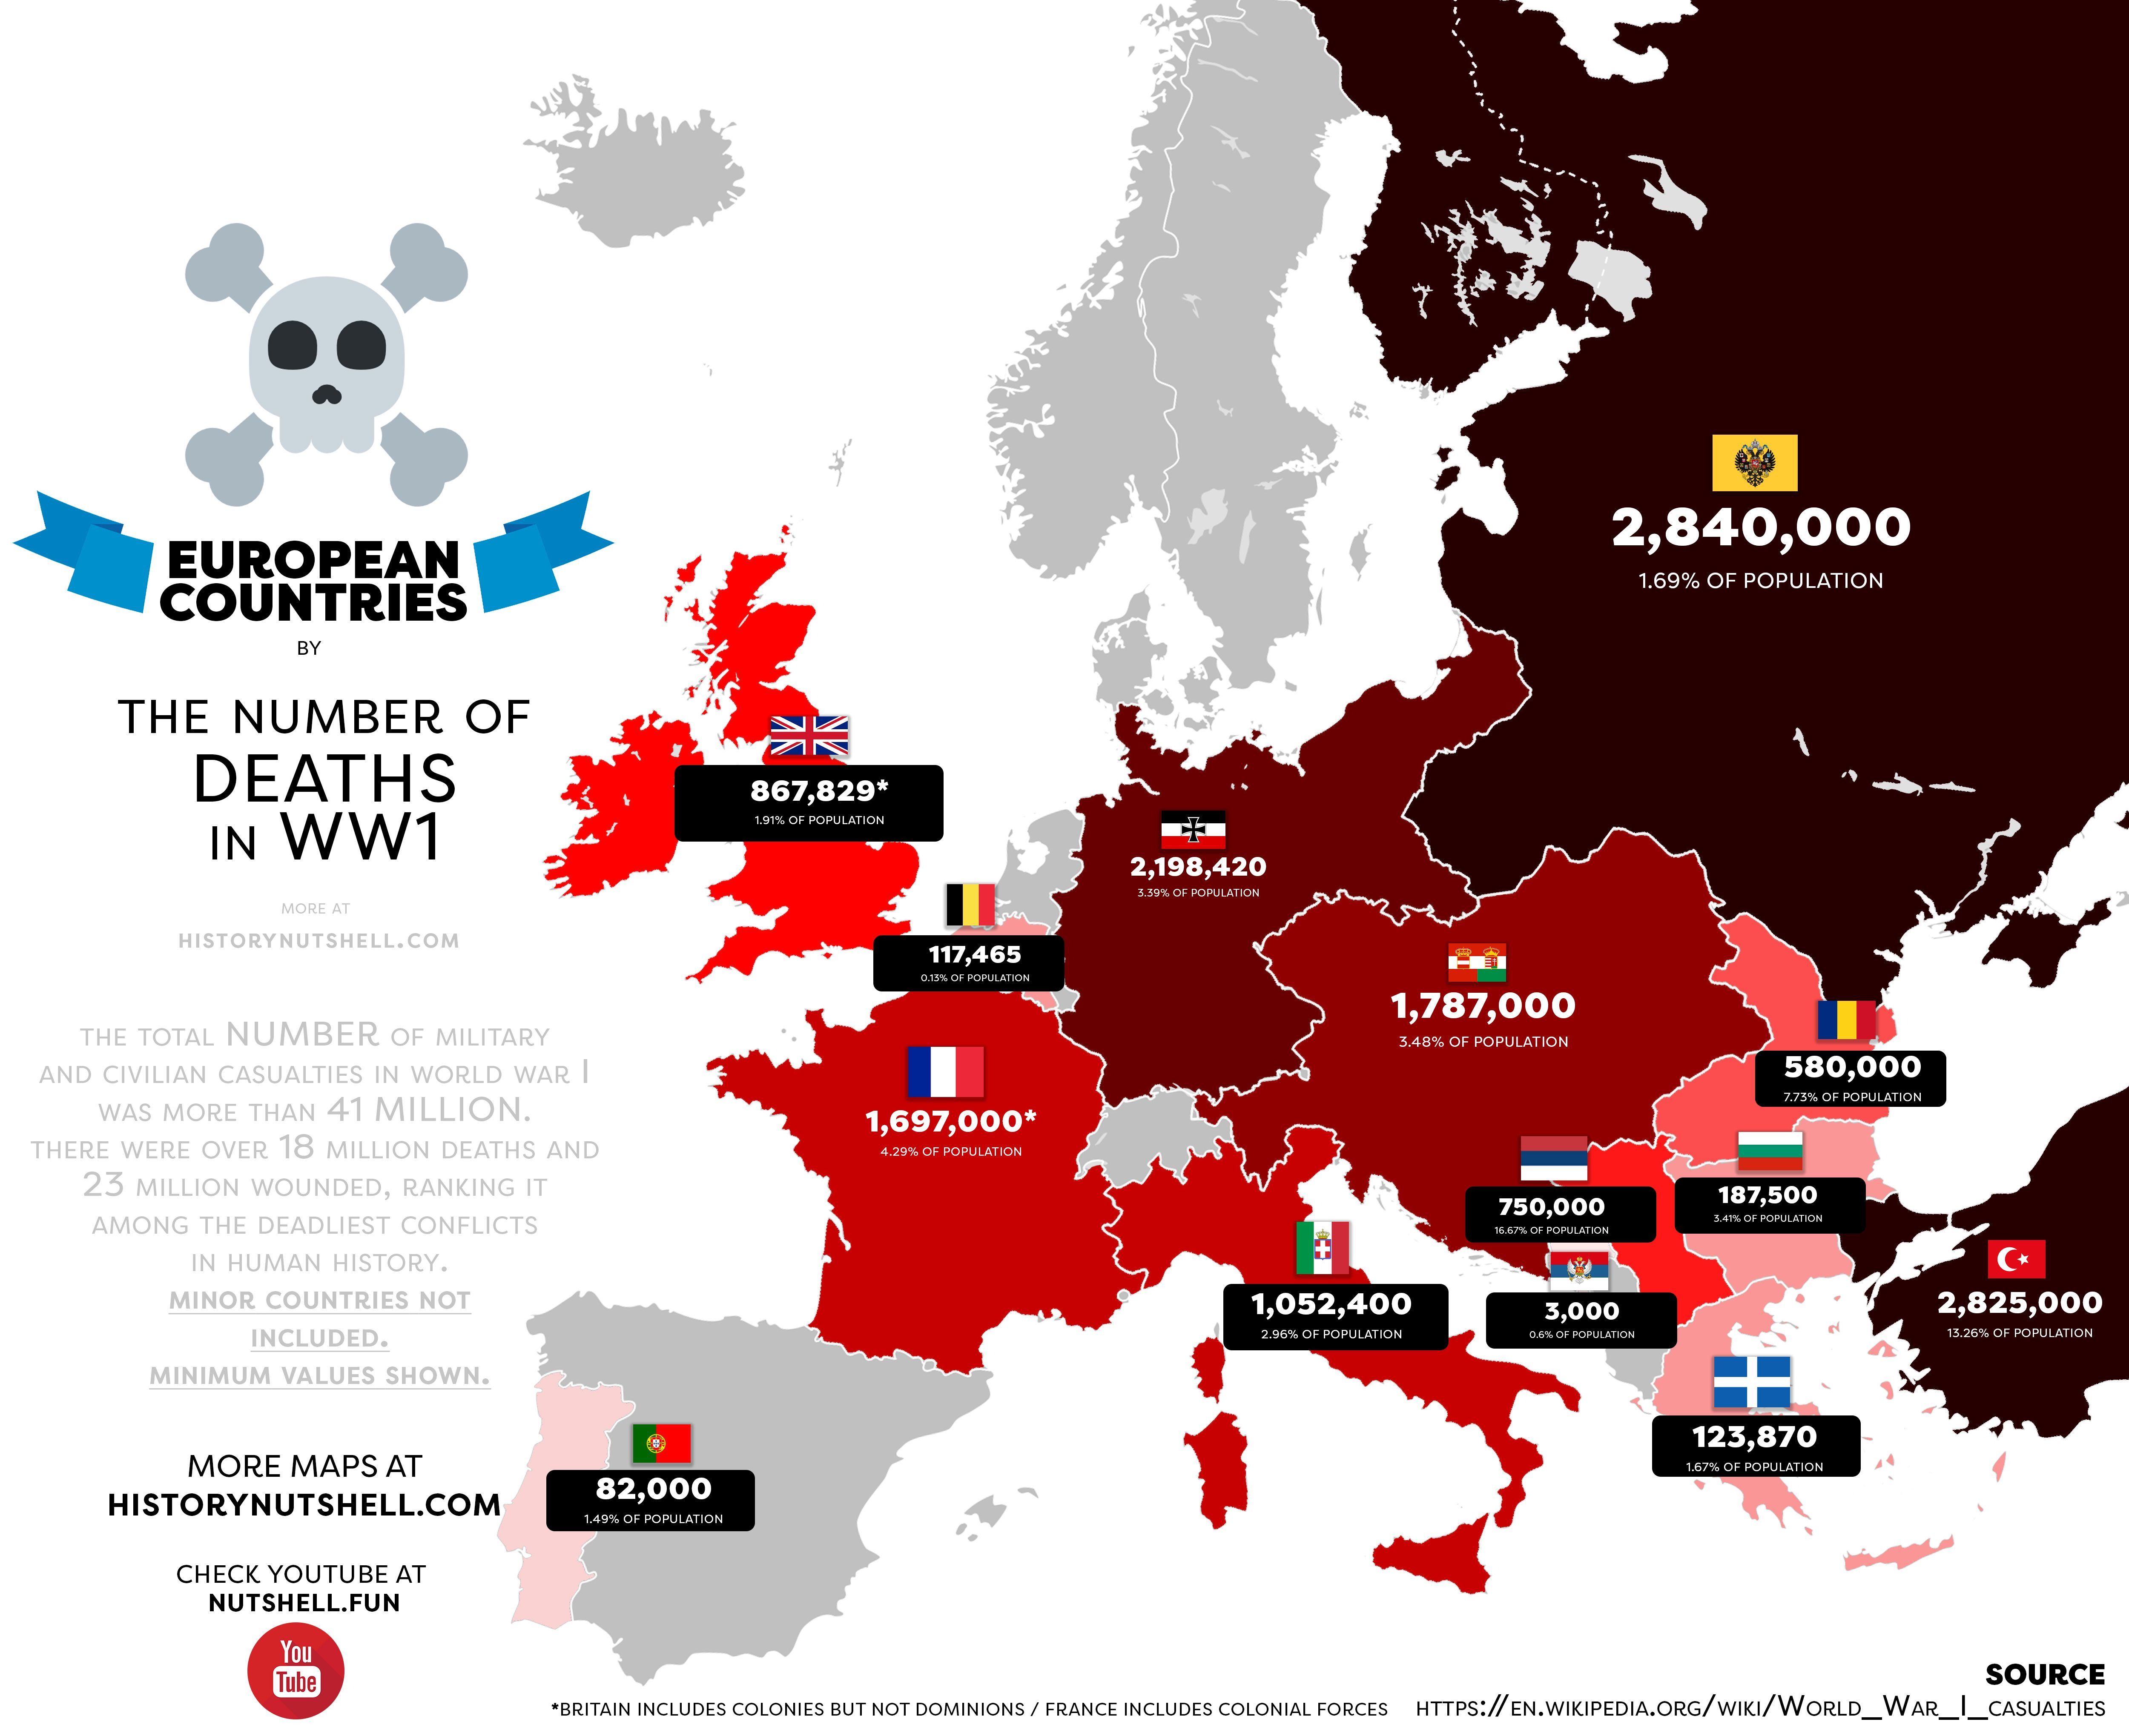 Deaths in WW1 by European Country Map, European history